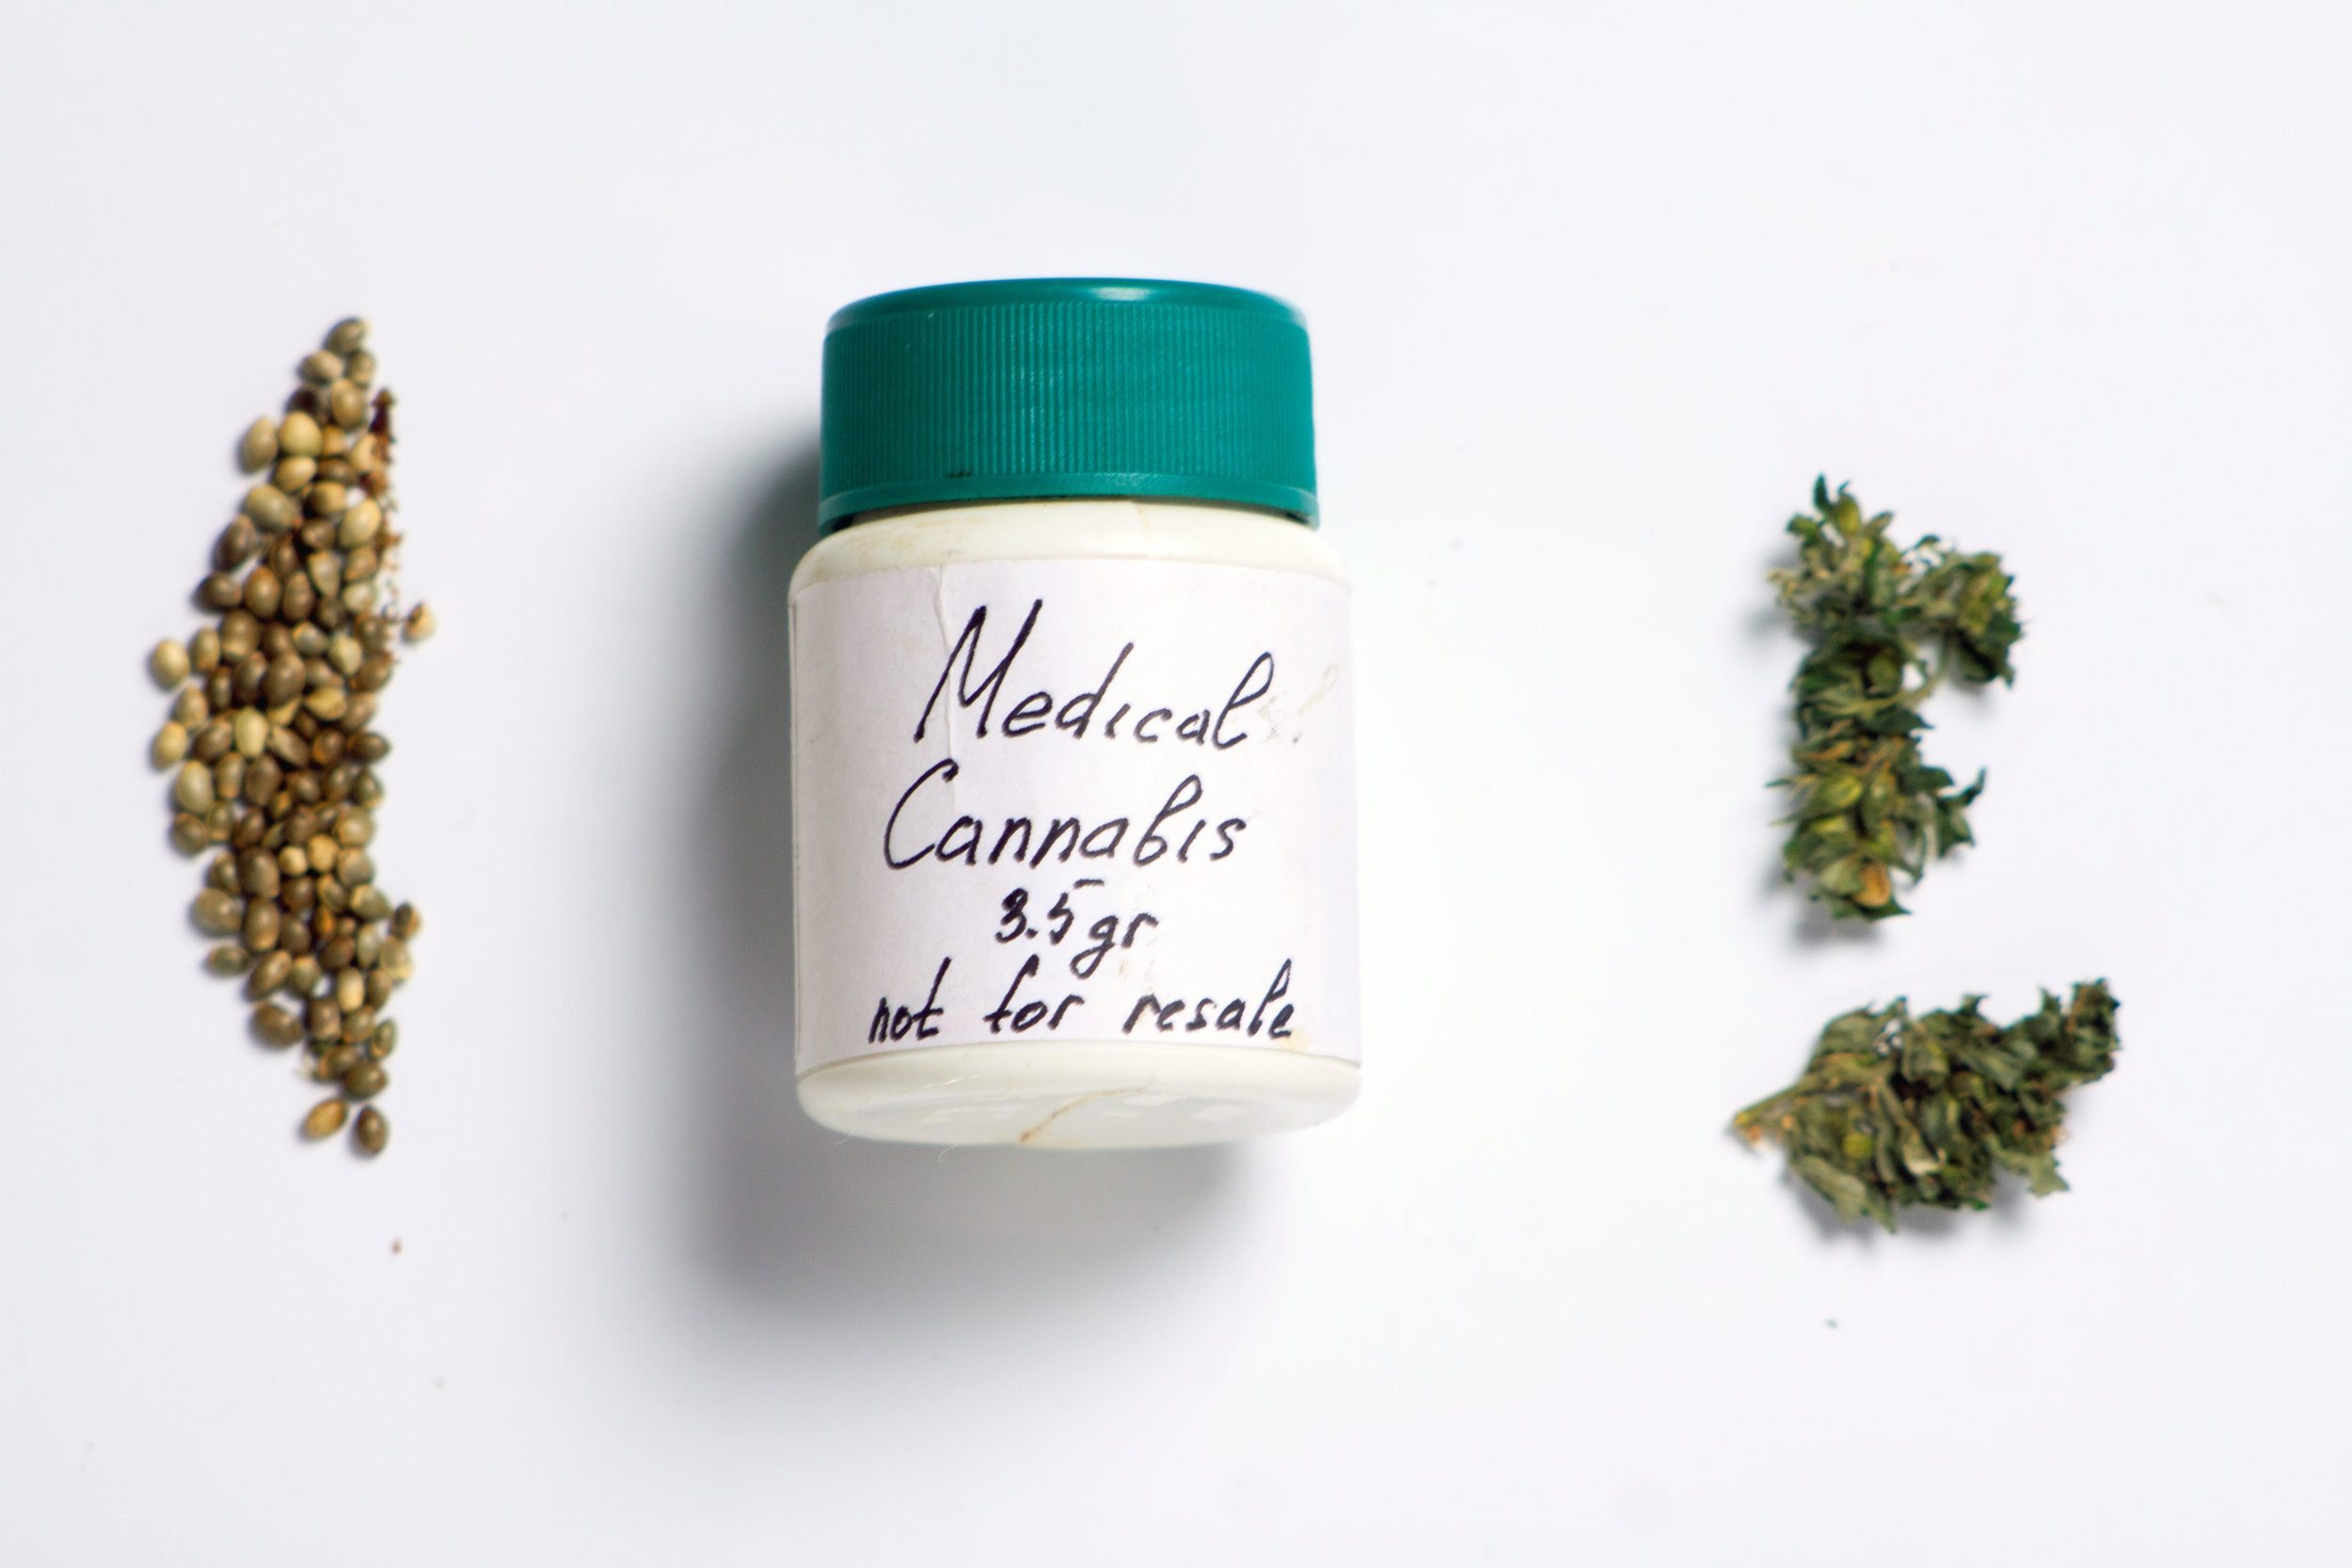 Medical Cannabis has been shown to be effective for combating many symptoms